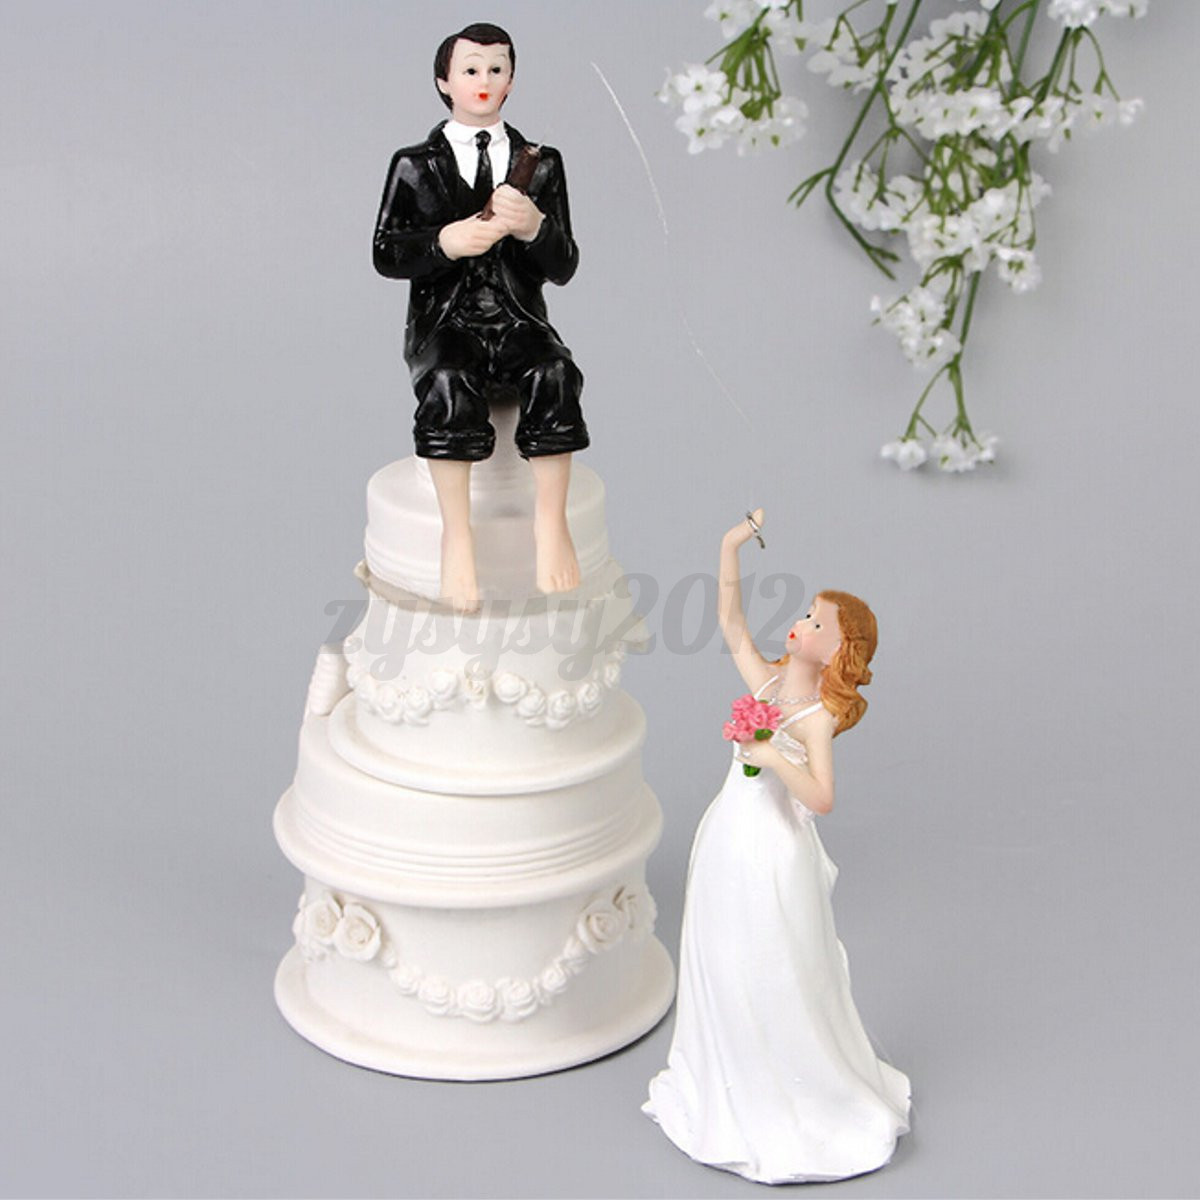 Bride Wedding Cake Topper: Romantic Wedding Cake Toppers Figure Bride And Groom